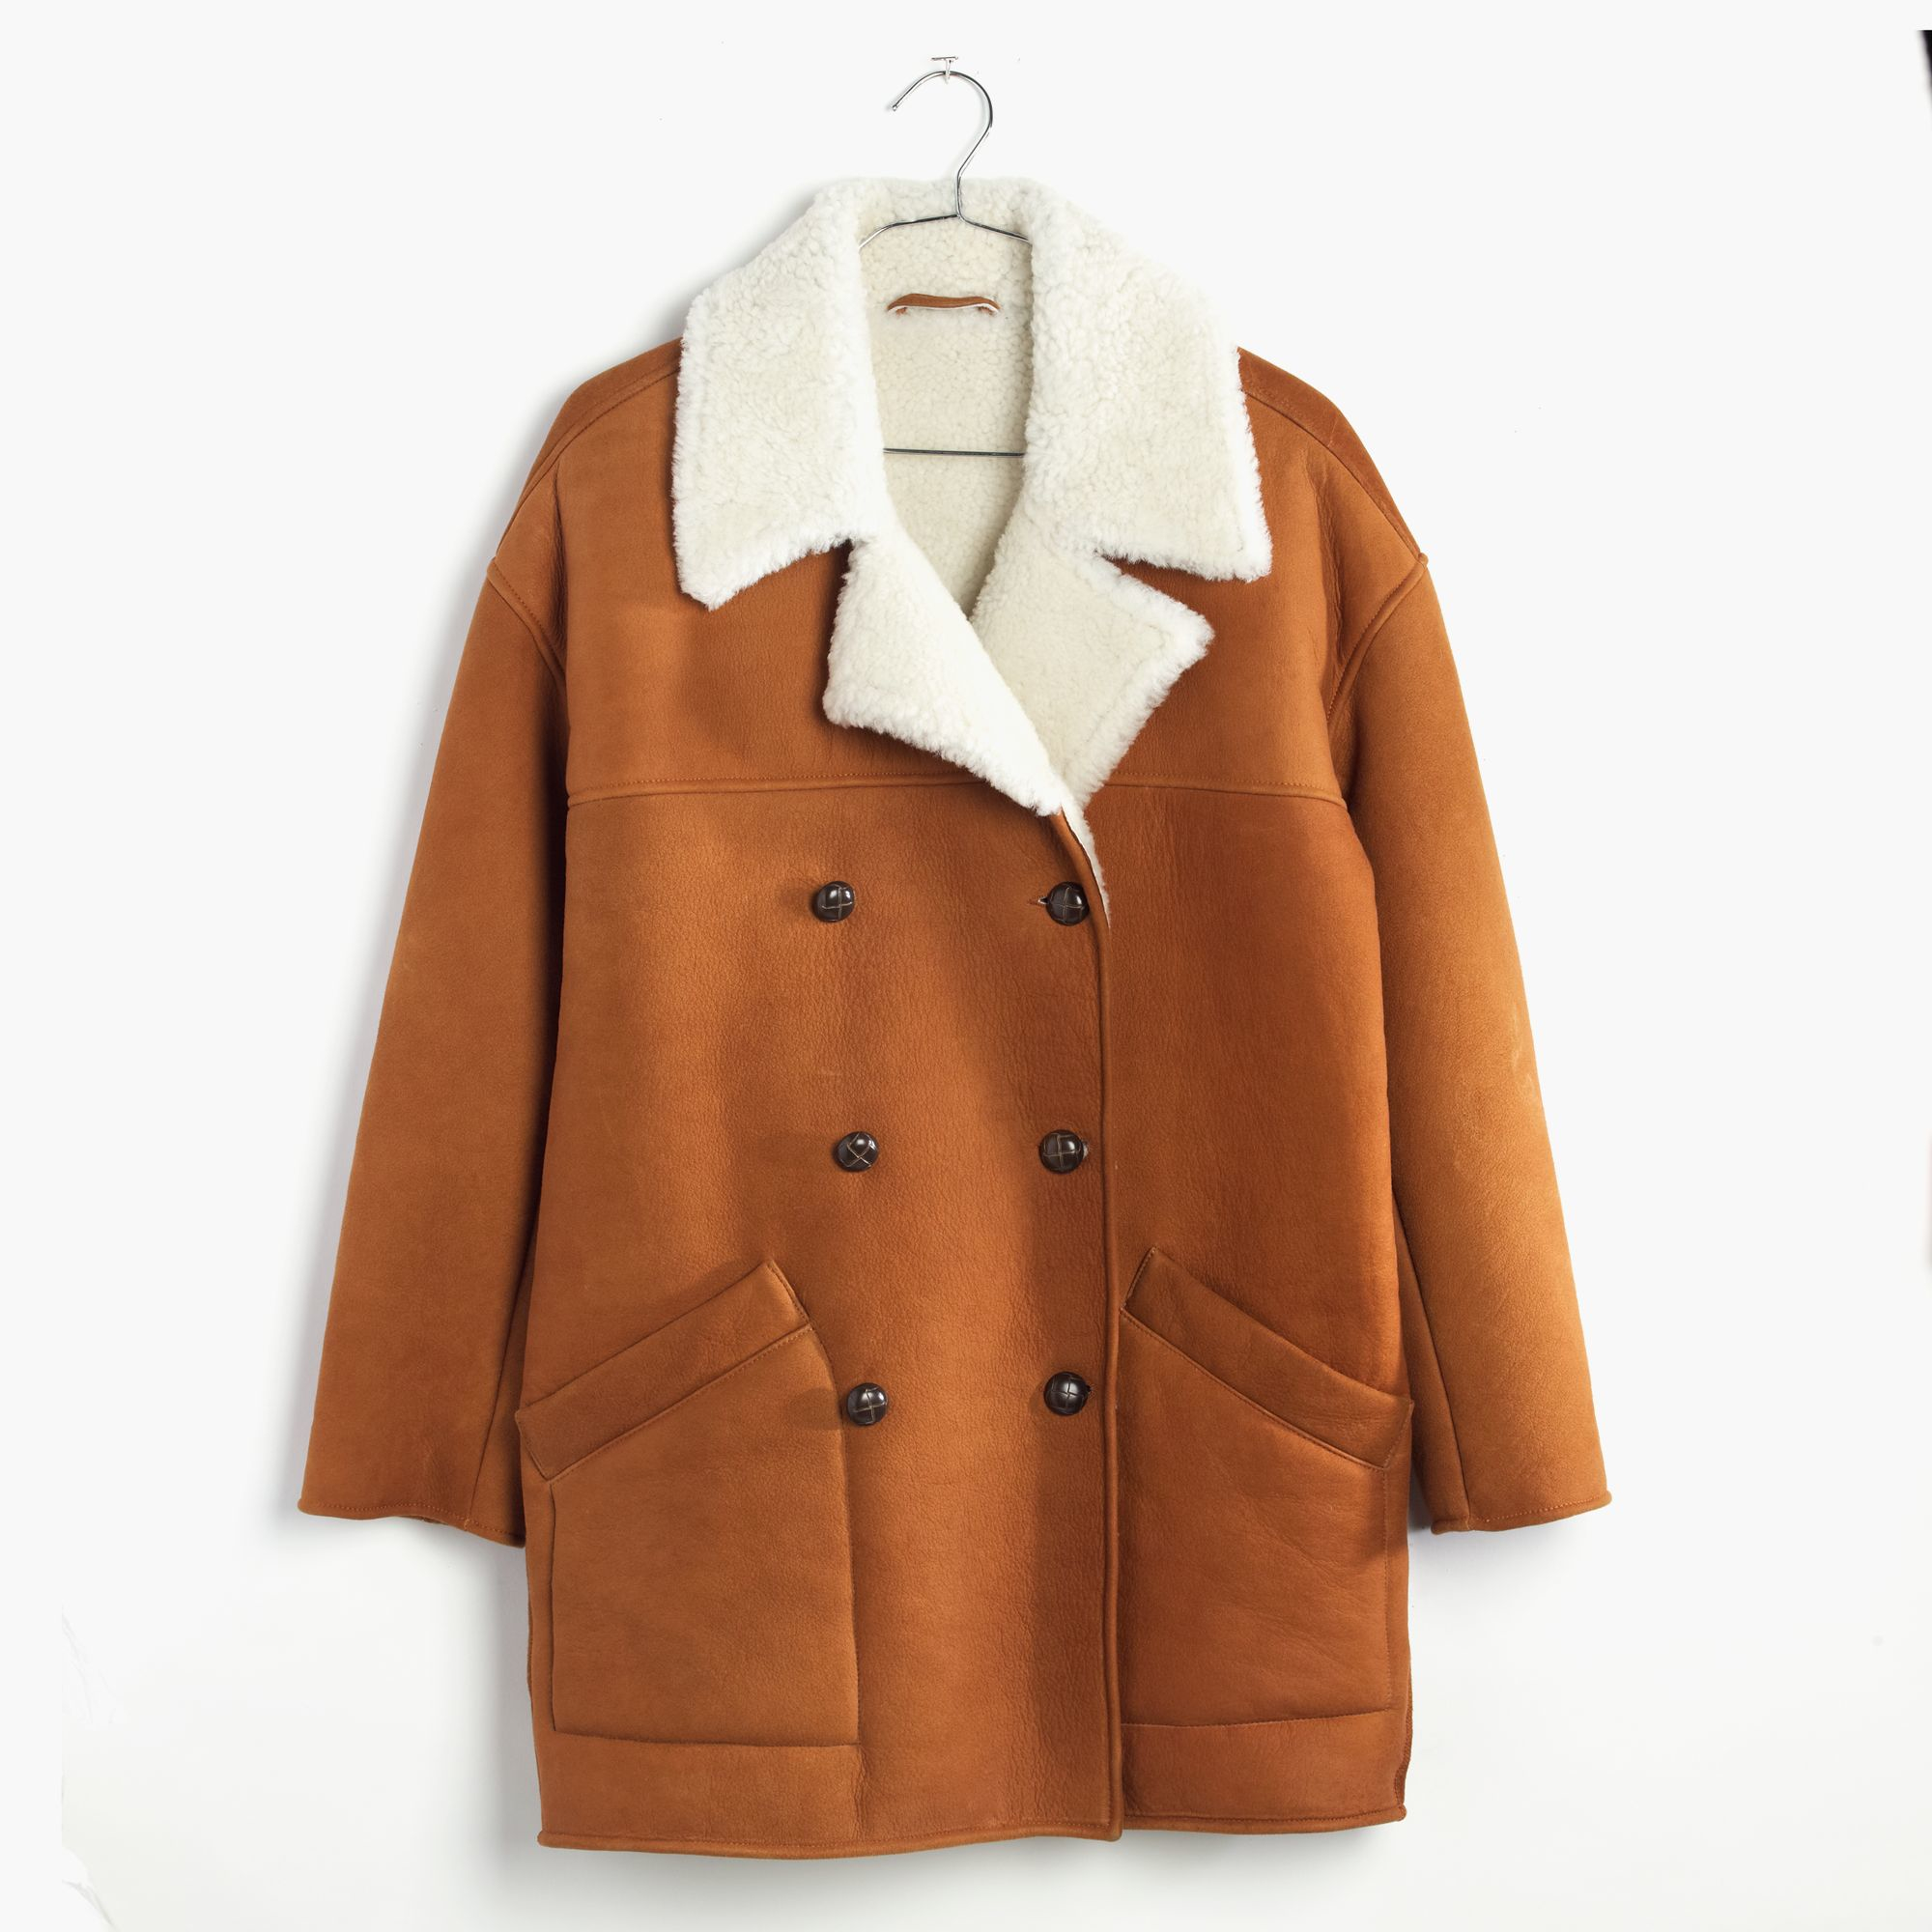 Madewell Shearling Car Coat in Brown | Lyst